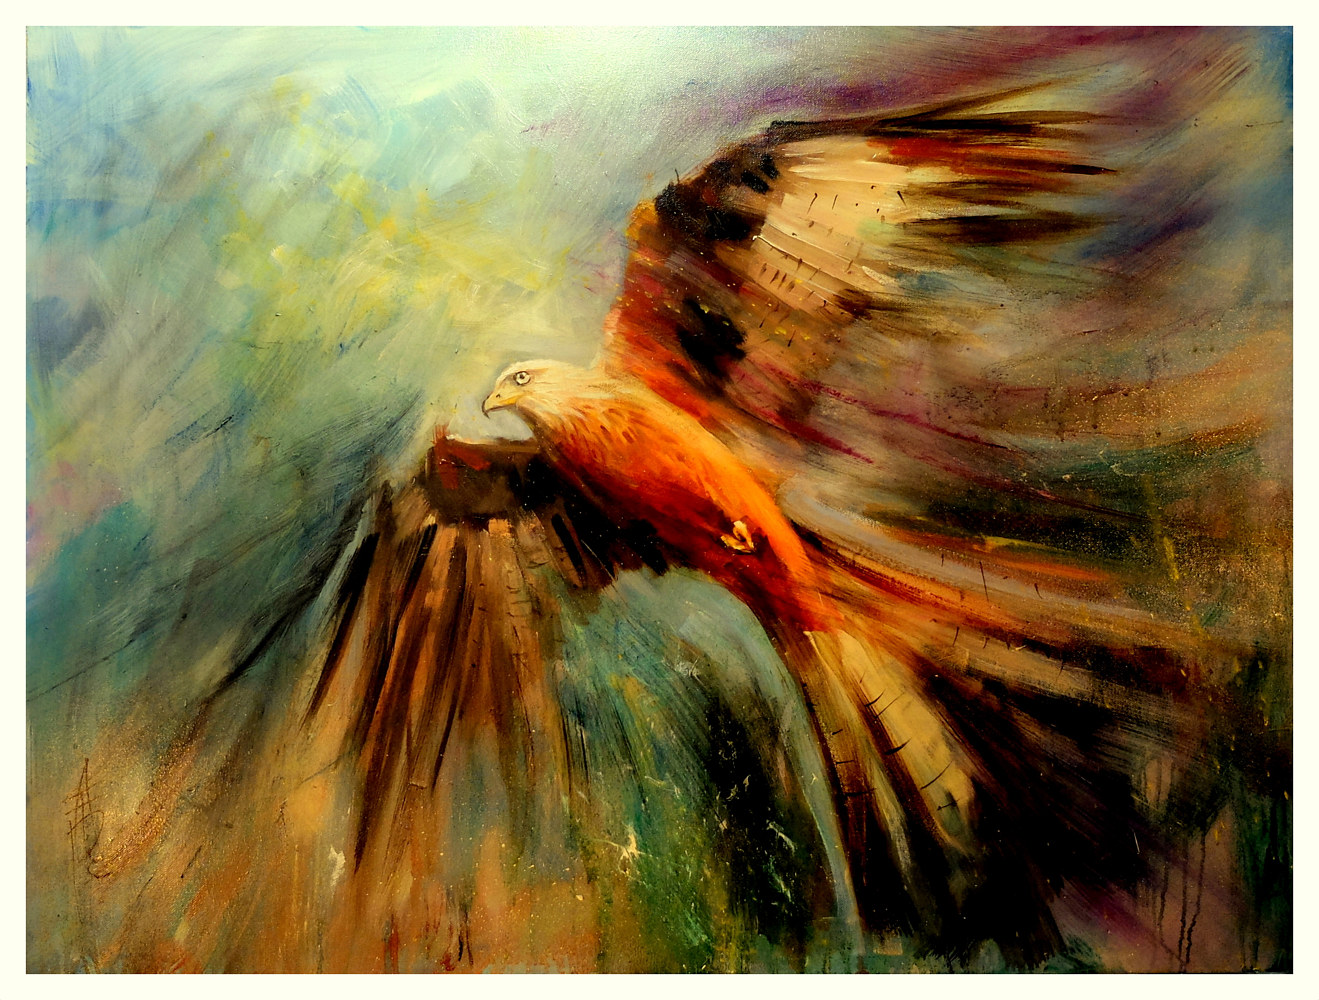 Red Kite Riding the Thermals, oil on box canvas, 30x40 by Anne Farrall Doyle